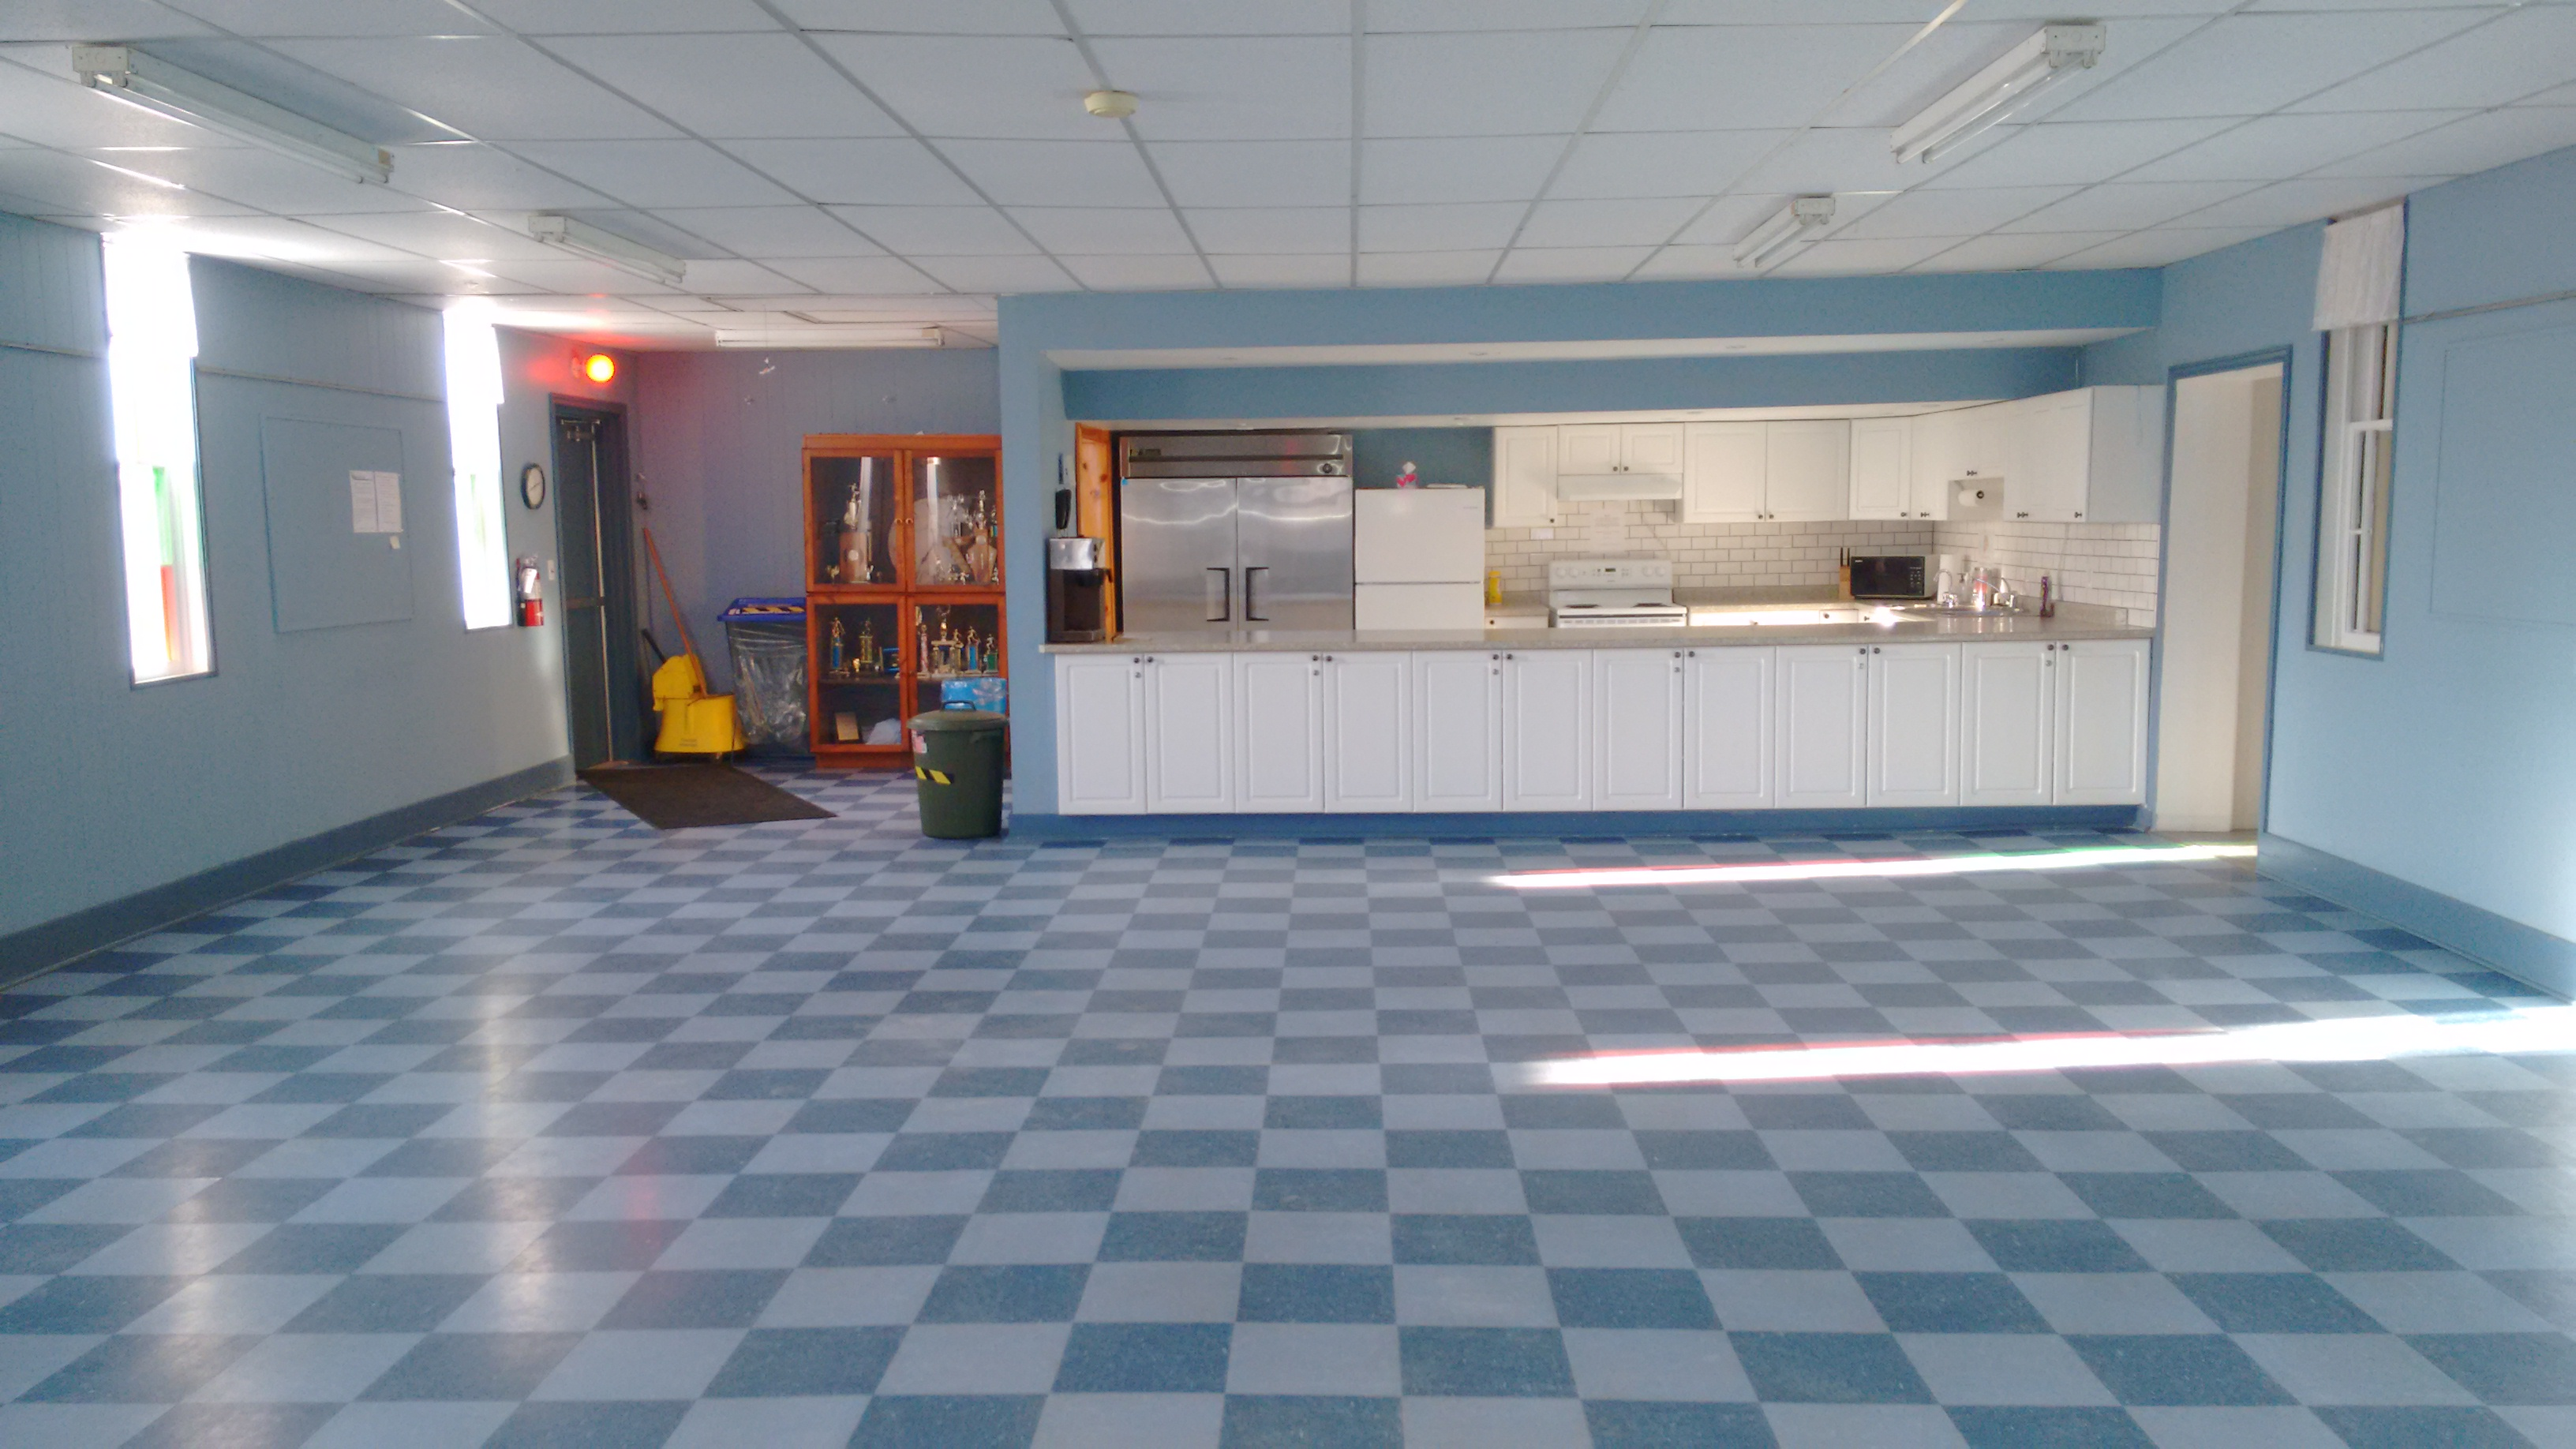 blue room with blue checkered floor and a kitchenette at the back of the room with a fridge, stove and cupboards